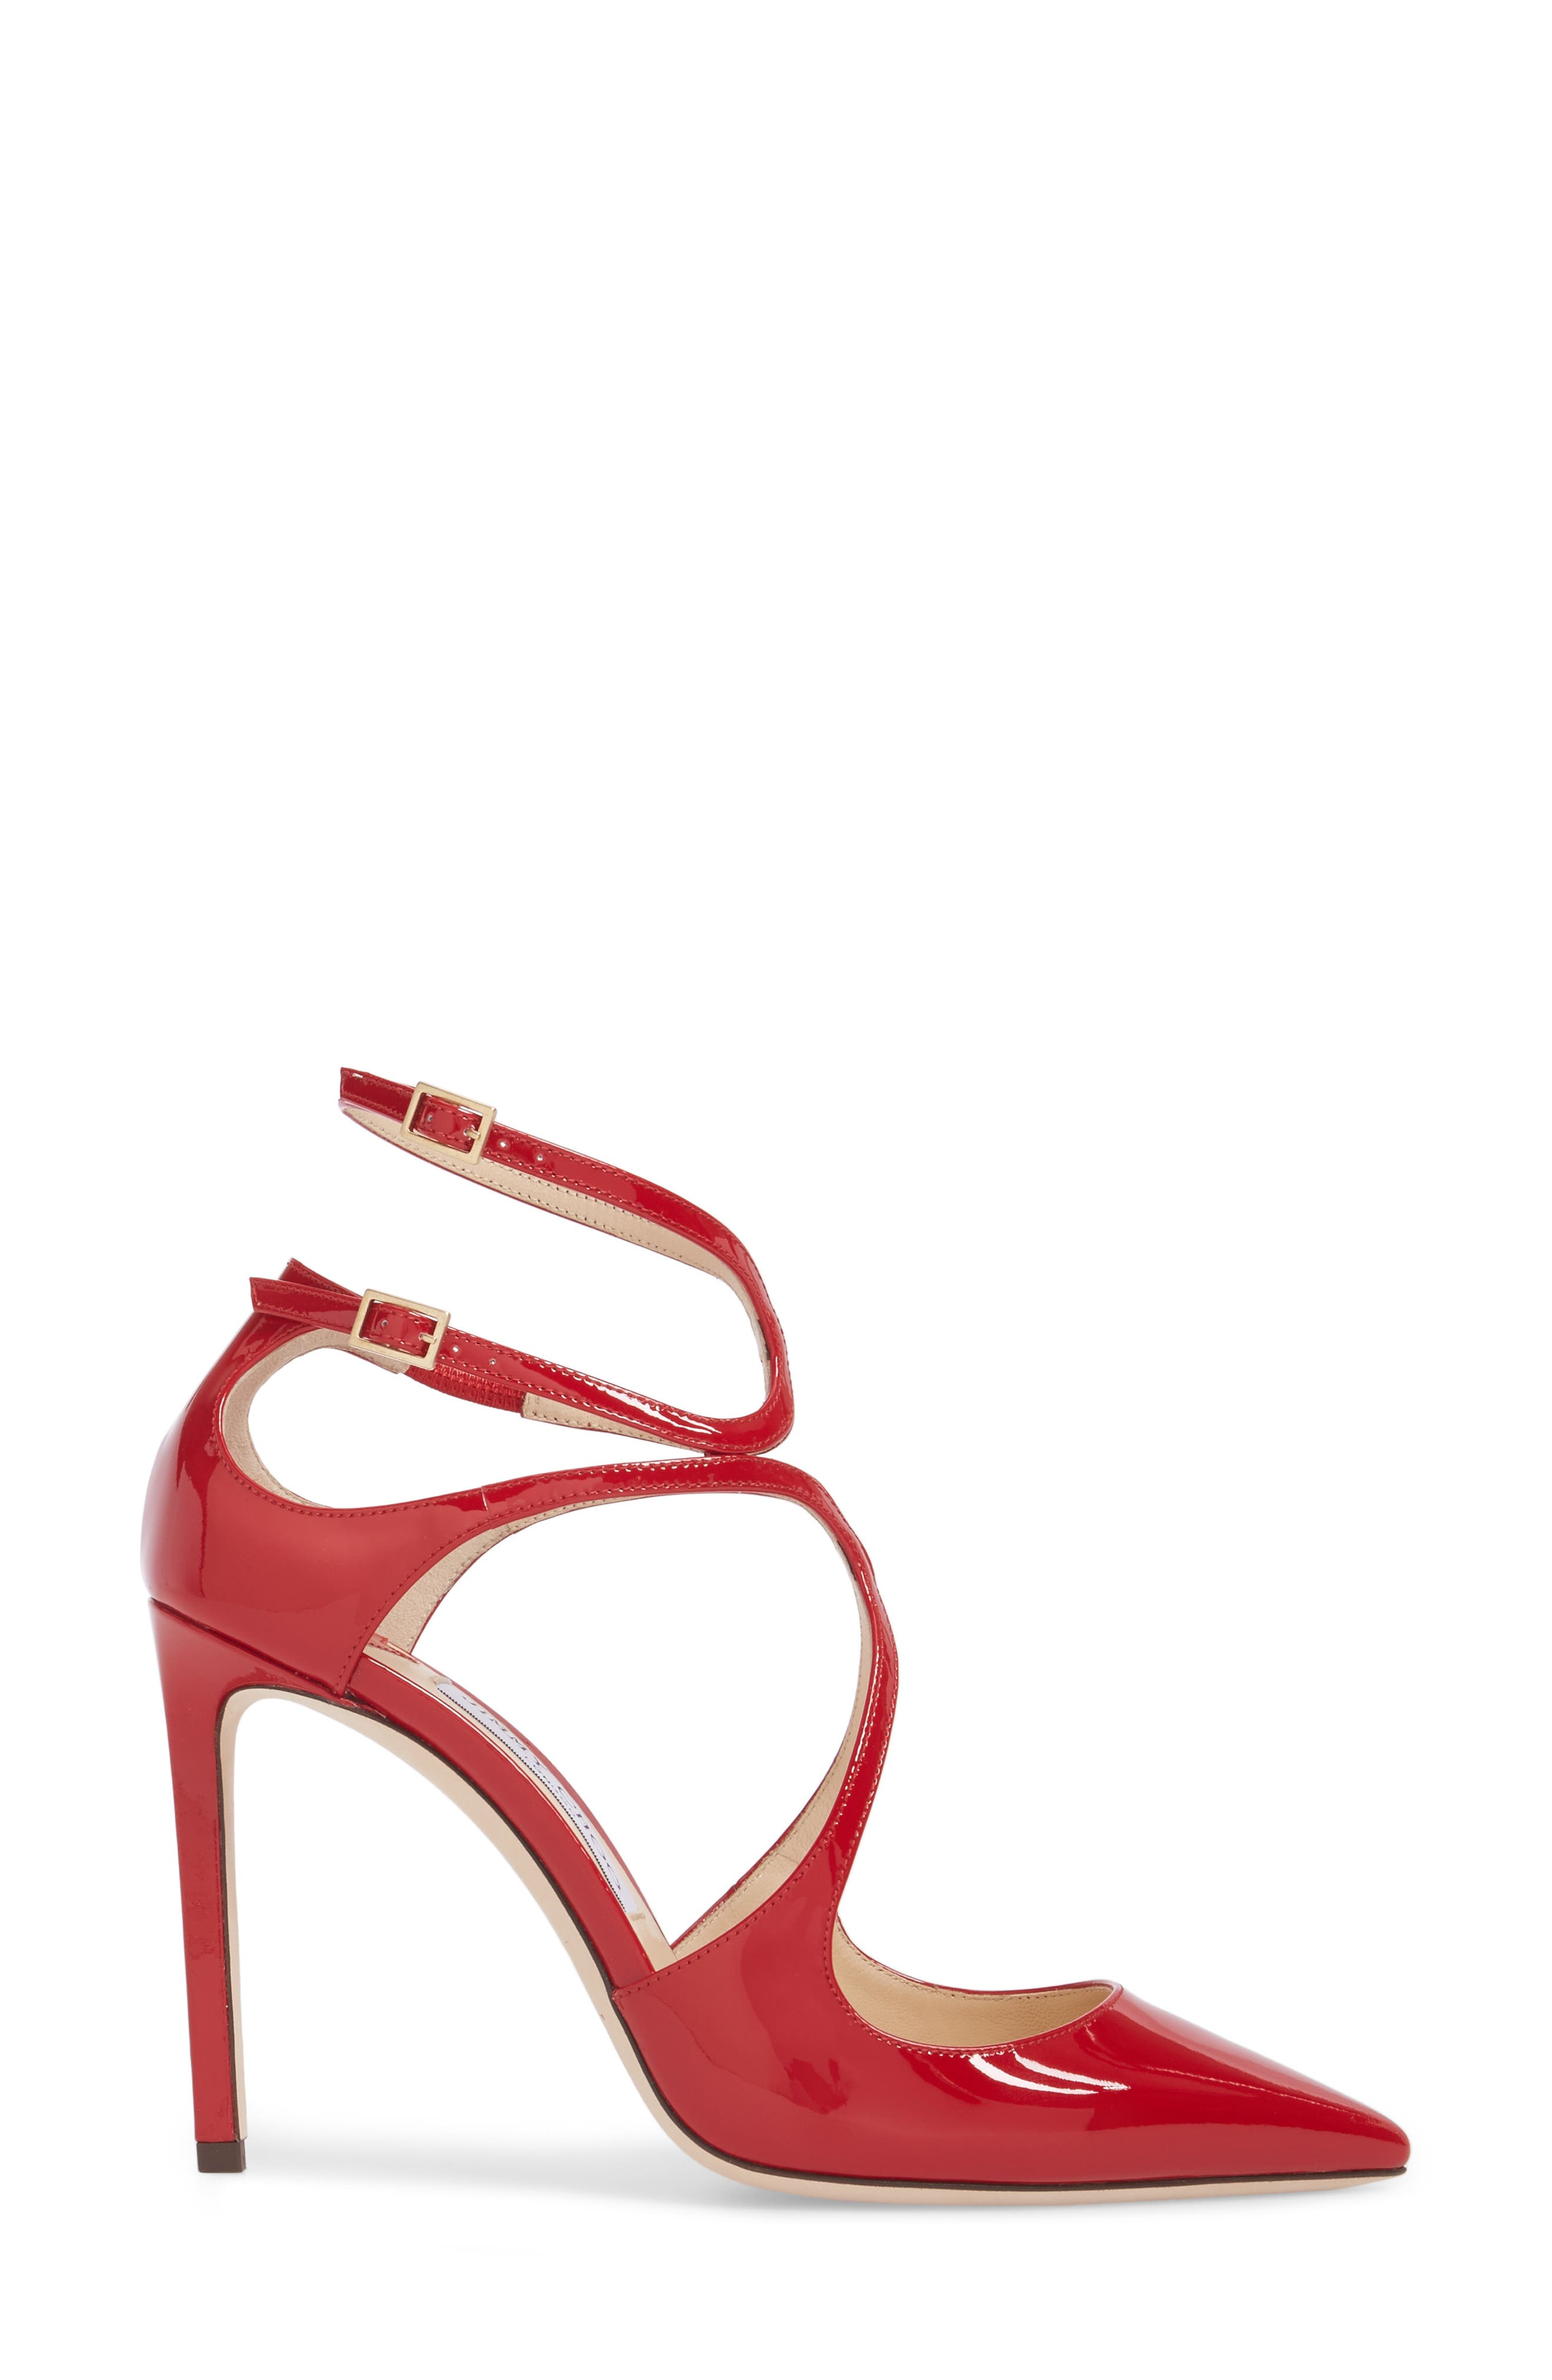 Lancer Strappy Pump,                             Alternate thumbnail 3, color,                             Red Patent